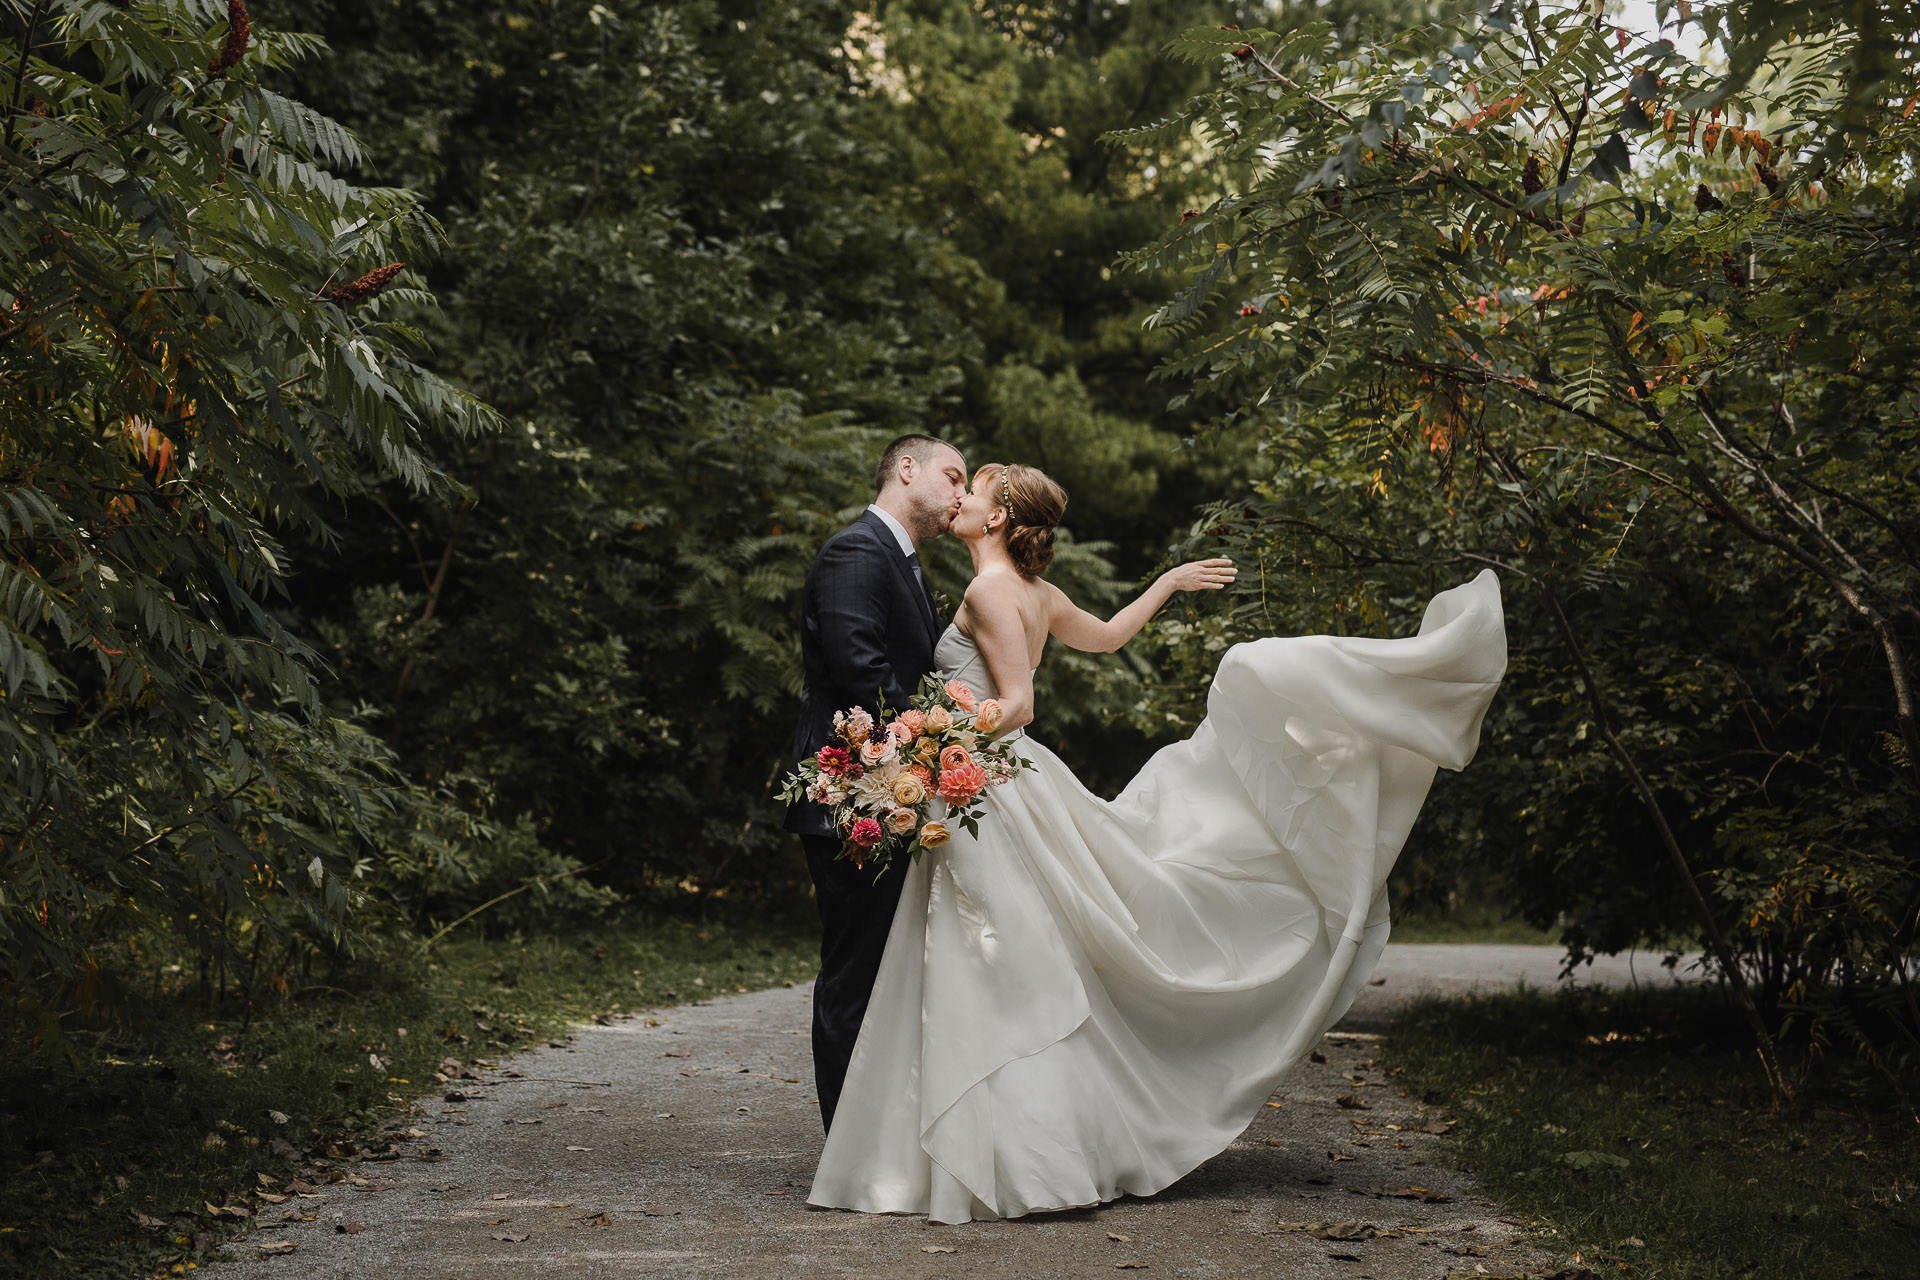 Evergreen Brickworks wedding photographer - dress blowing